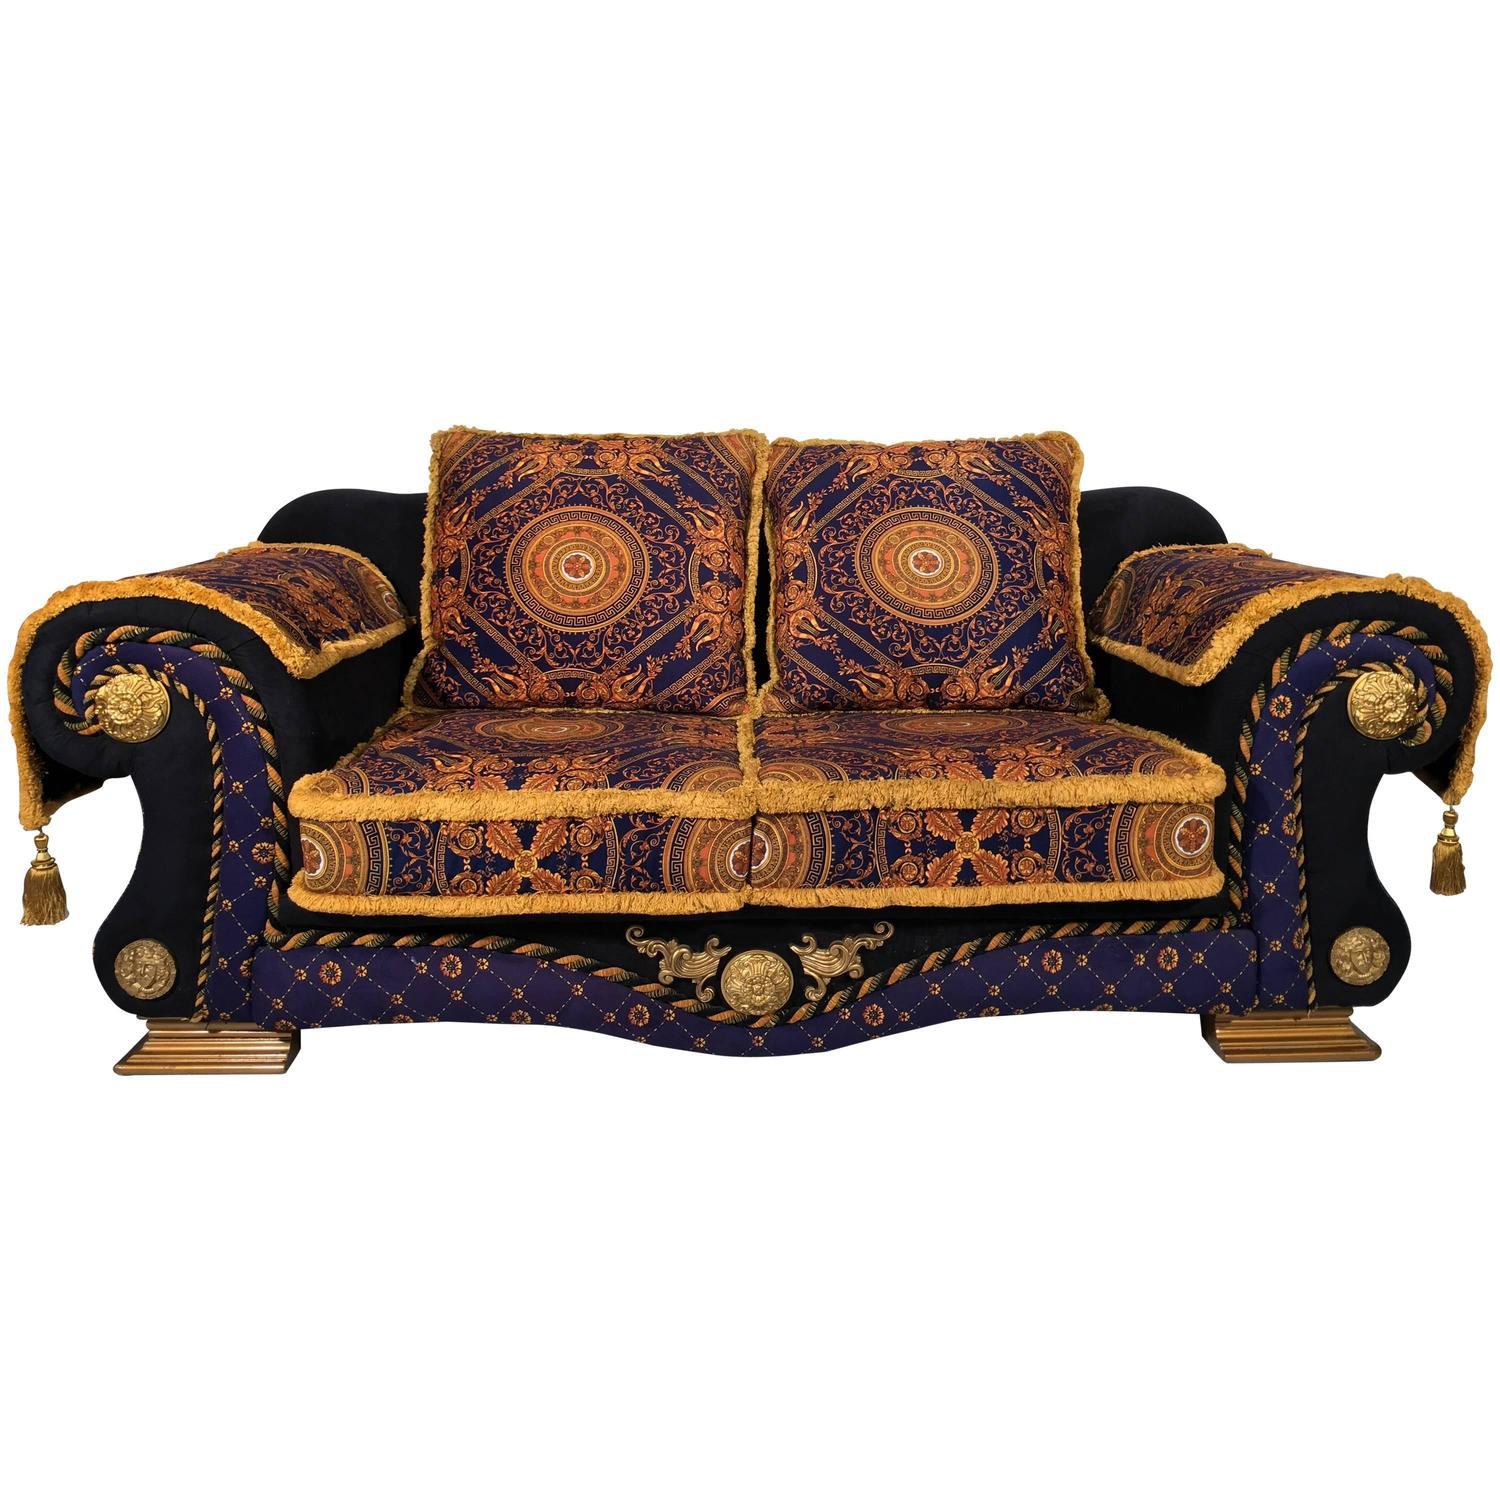 1980 italian design n o barocco velvet sofa versace style for sale at 1stdibs Versace home furniture uk